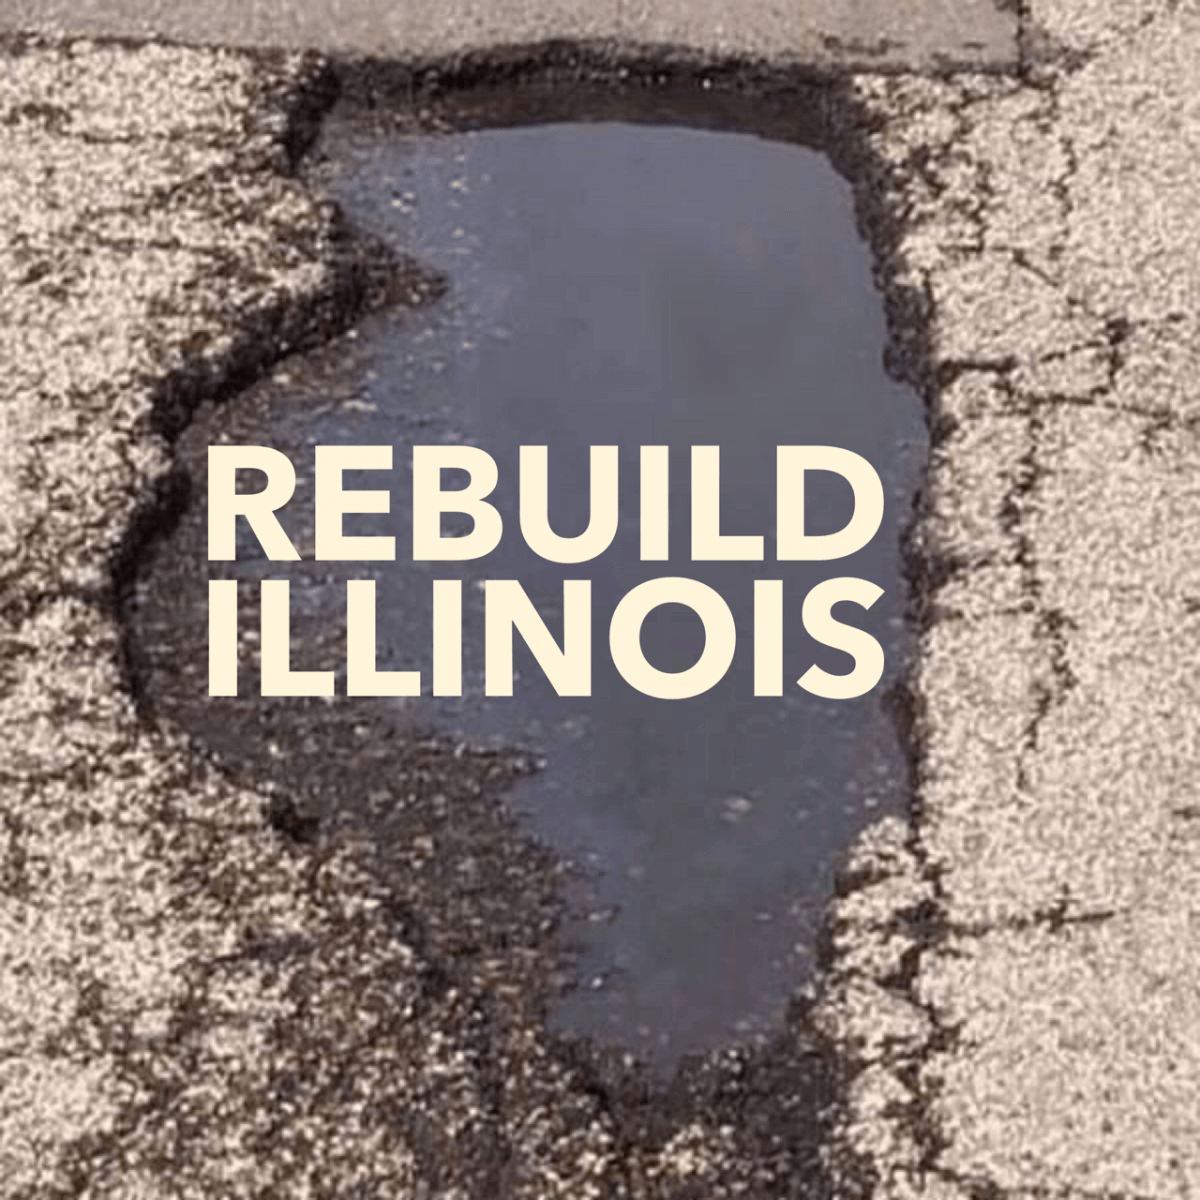 REBUILD ILLINOIS: THE FUSE IS LIT FOR HISTORIC INFRASTRUCTURE PLAN